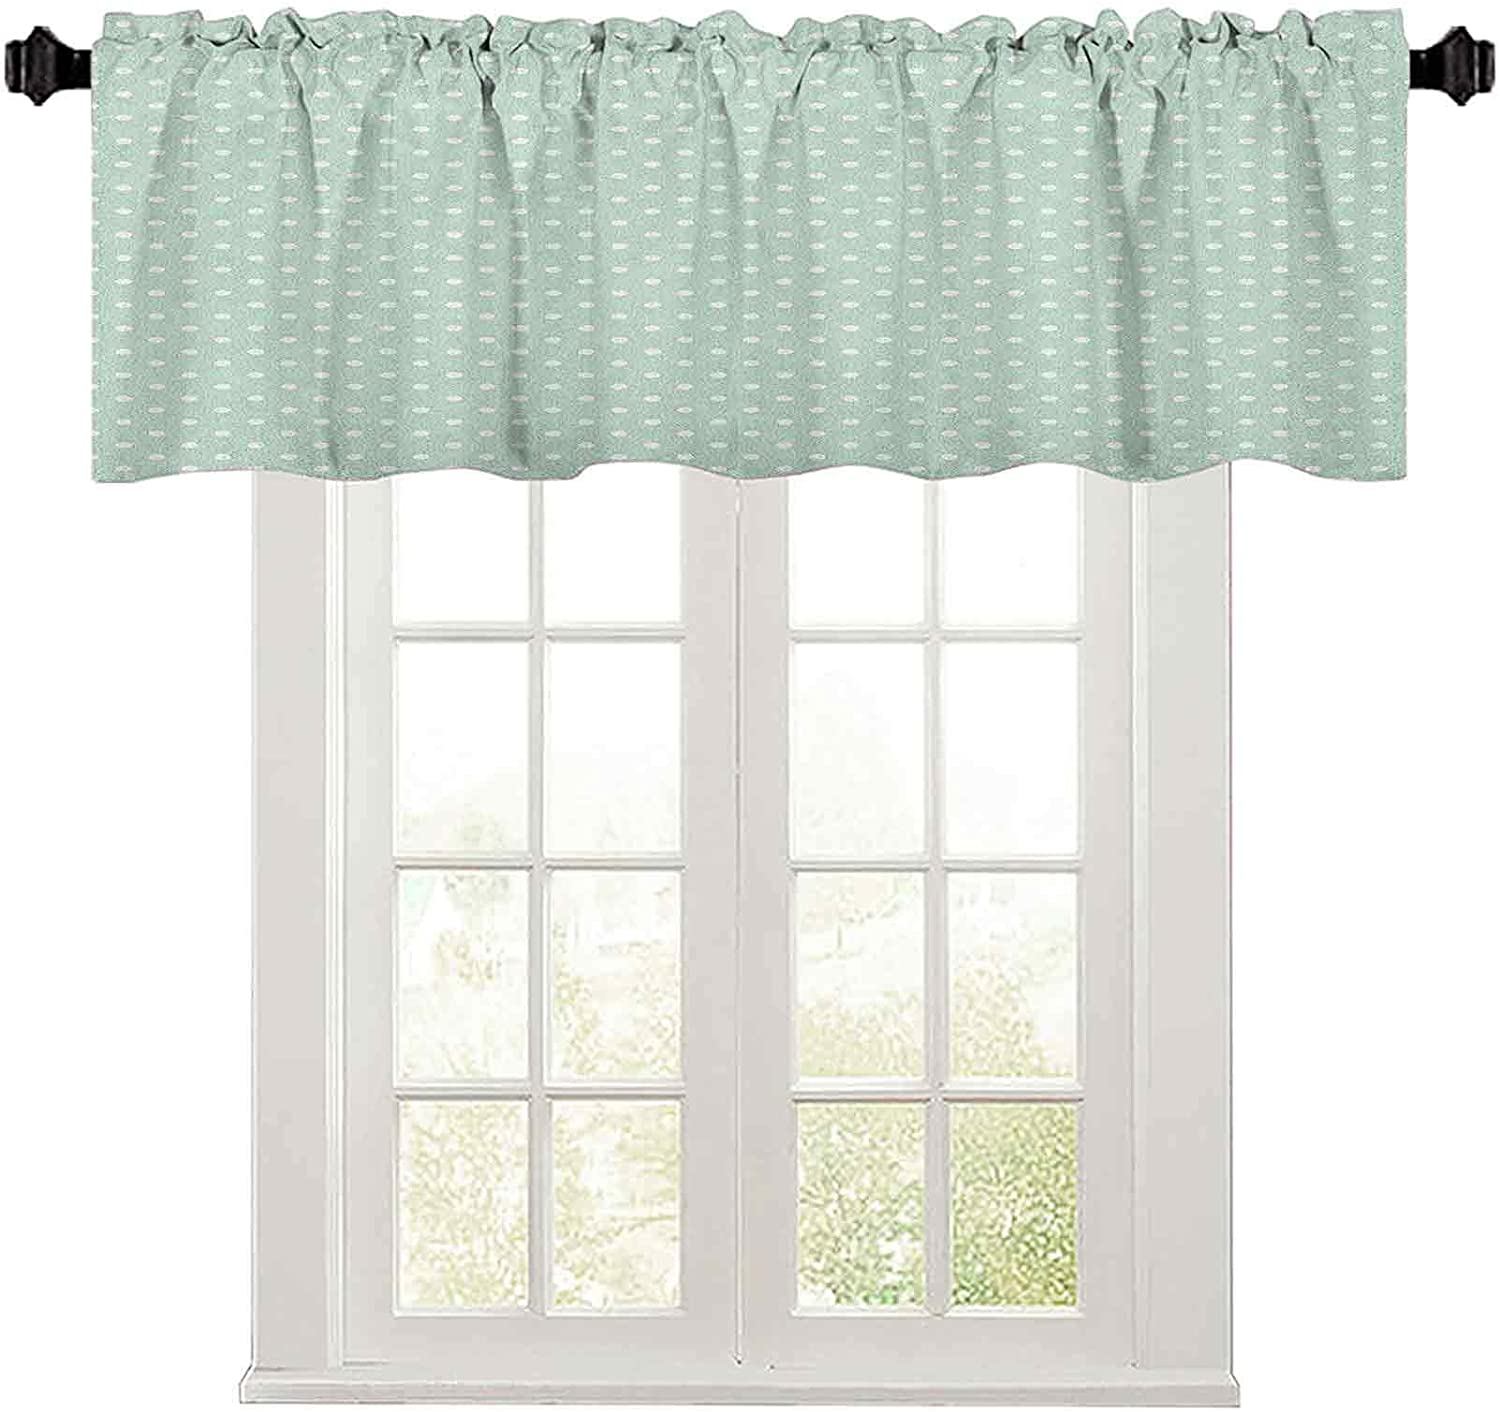 Window valances, Retro Style Baby Nursery Themed Pattern with Little White Polka Dots Pastel, 36